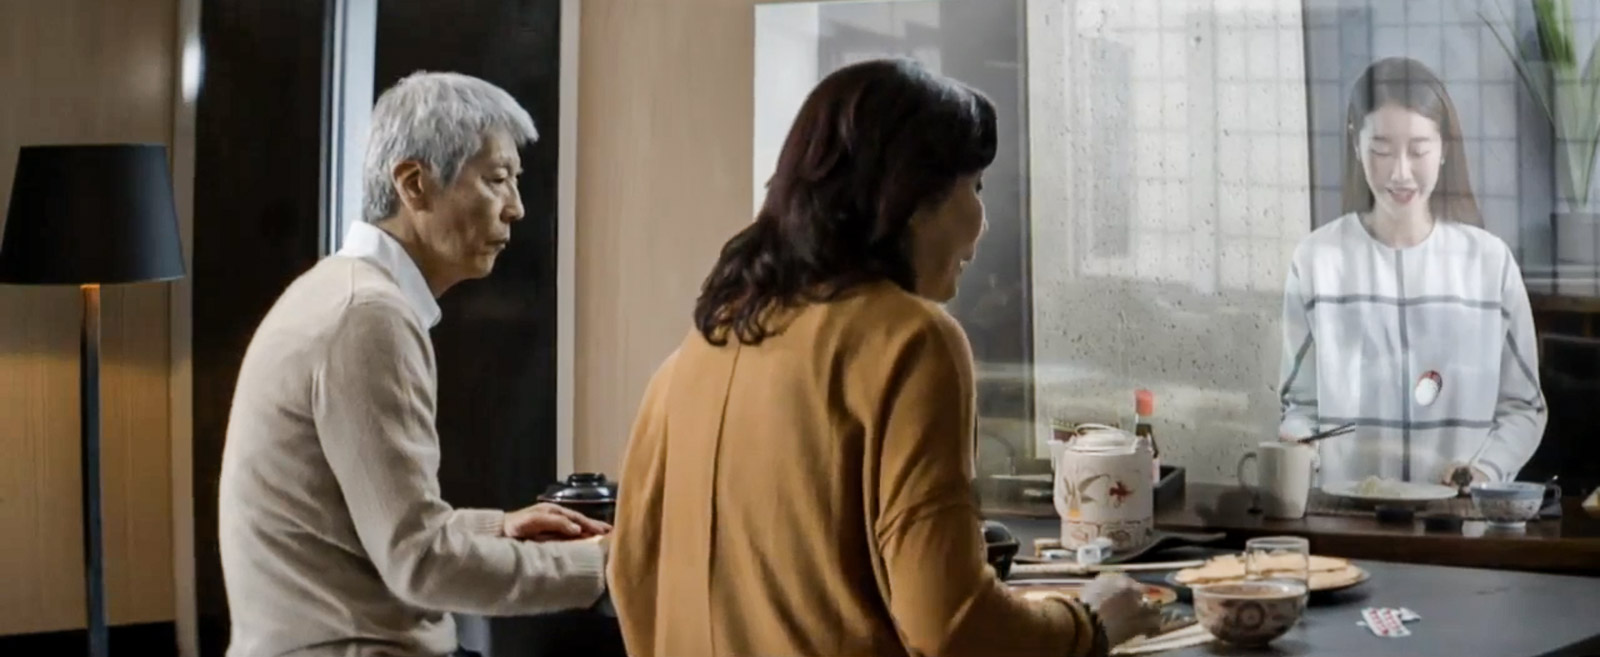 Samsung's vision of a smart home includes having dinner with a distant friend or relative who makes a video appearance.